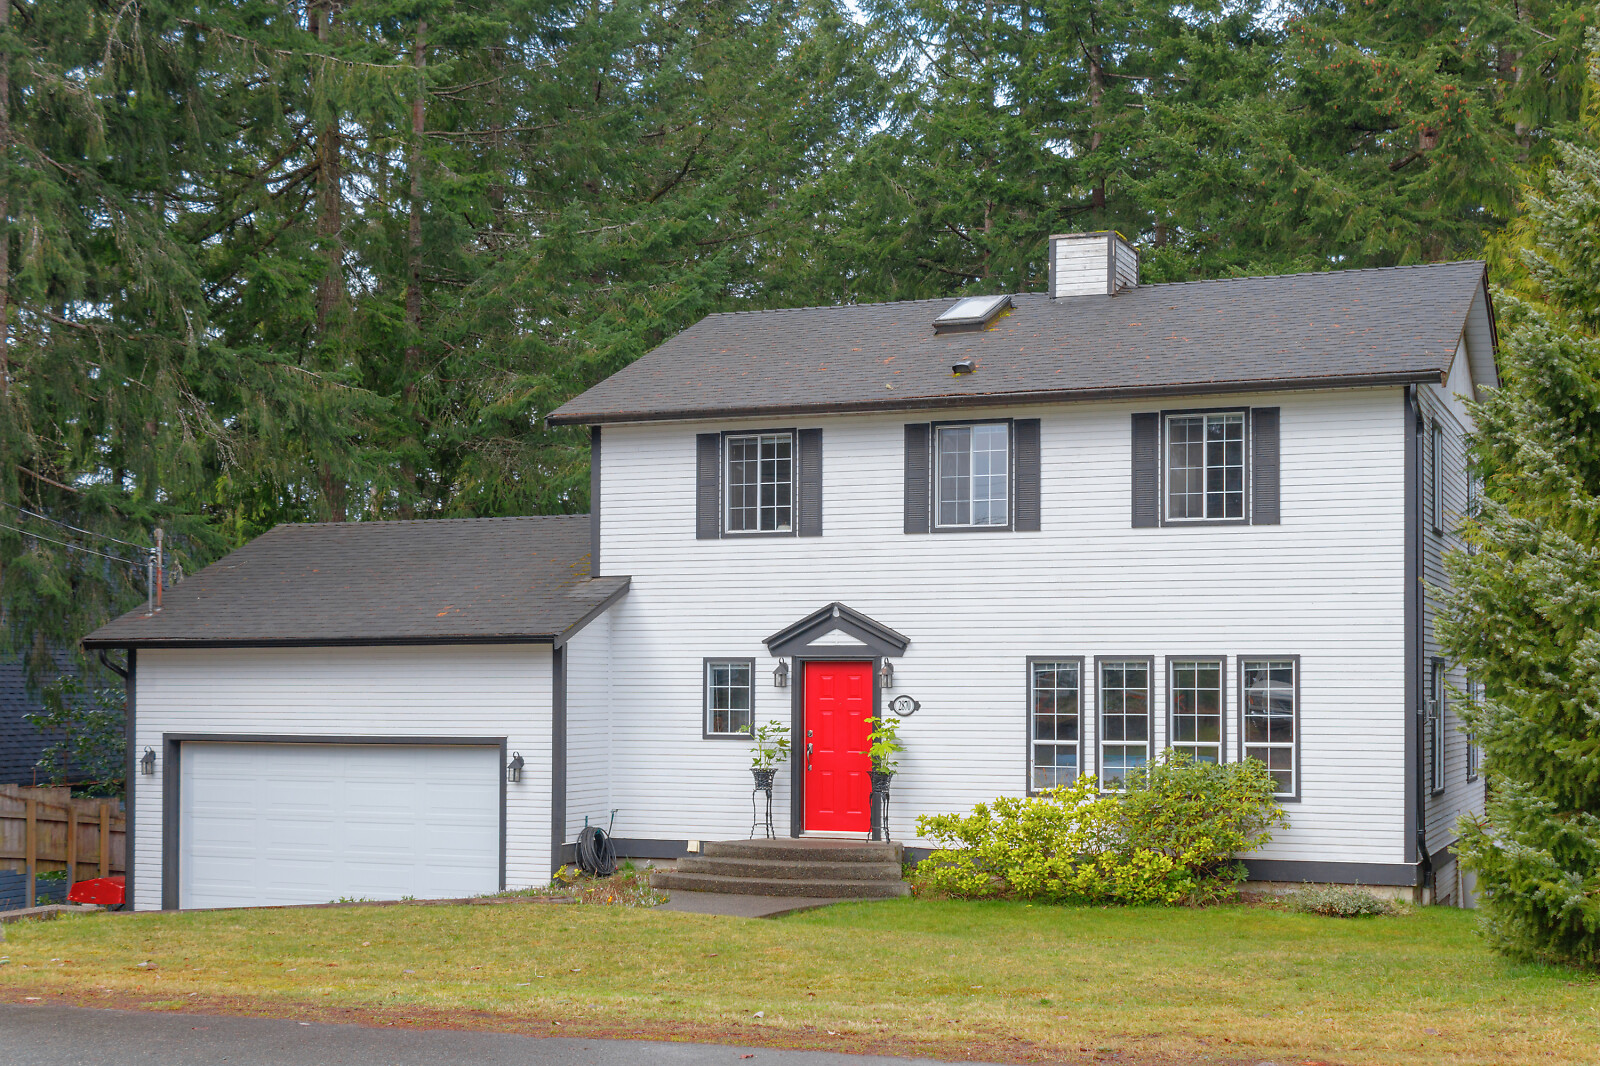 2870 Meadowview Rd, Shawnigan Lake, British Columbia  V0R 2W0 - Photo 2 - 870804